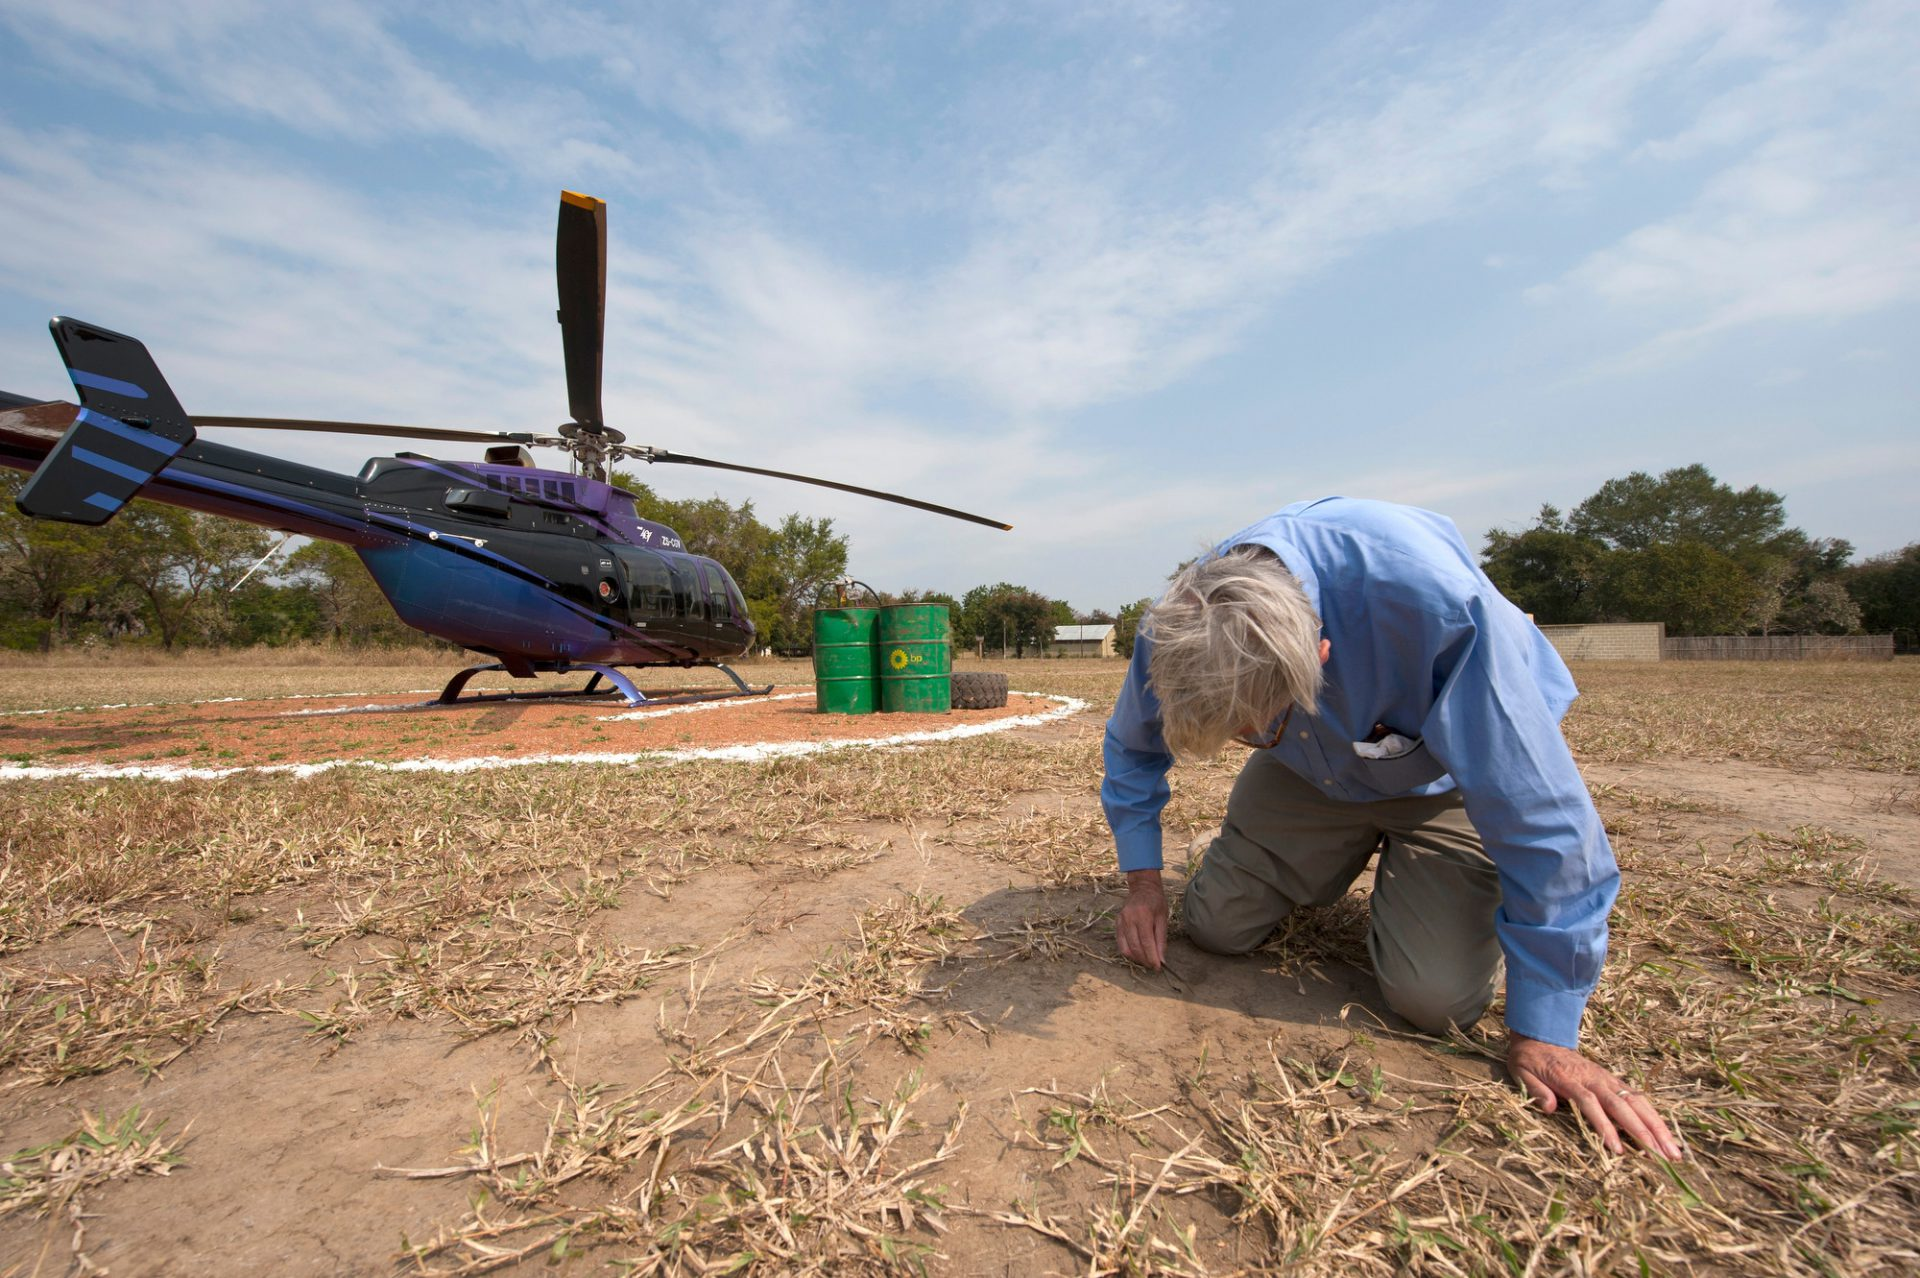 Photo: Dr. Edward O. Wilson examines an insect in Gorongosa National Park, Mozambique, Africa.